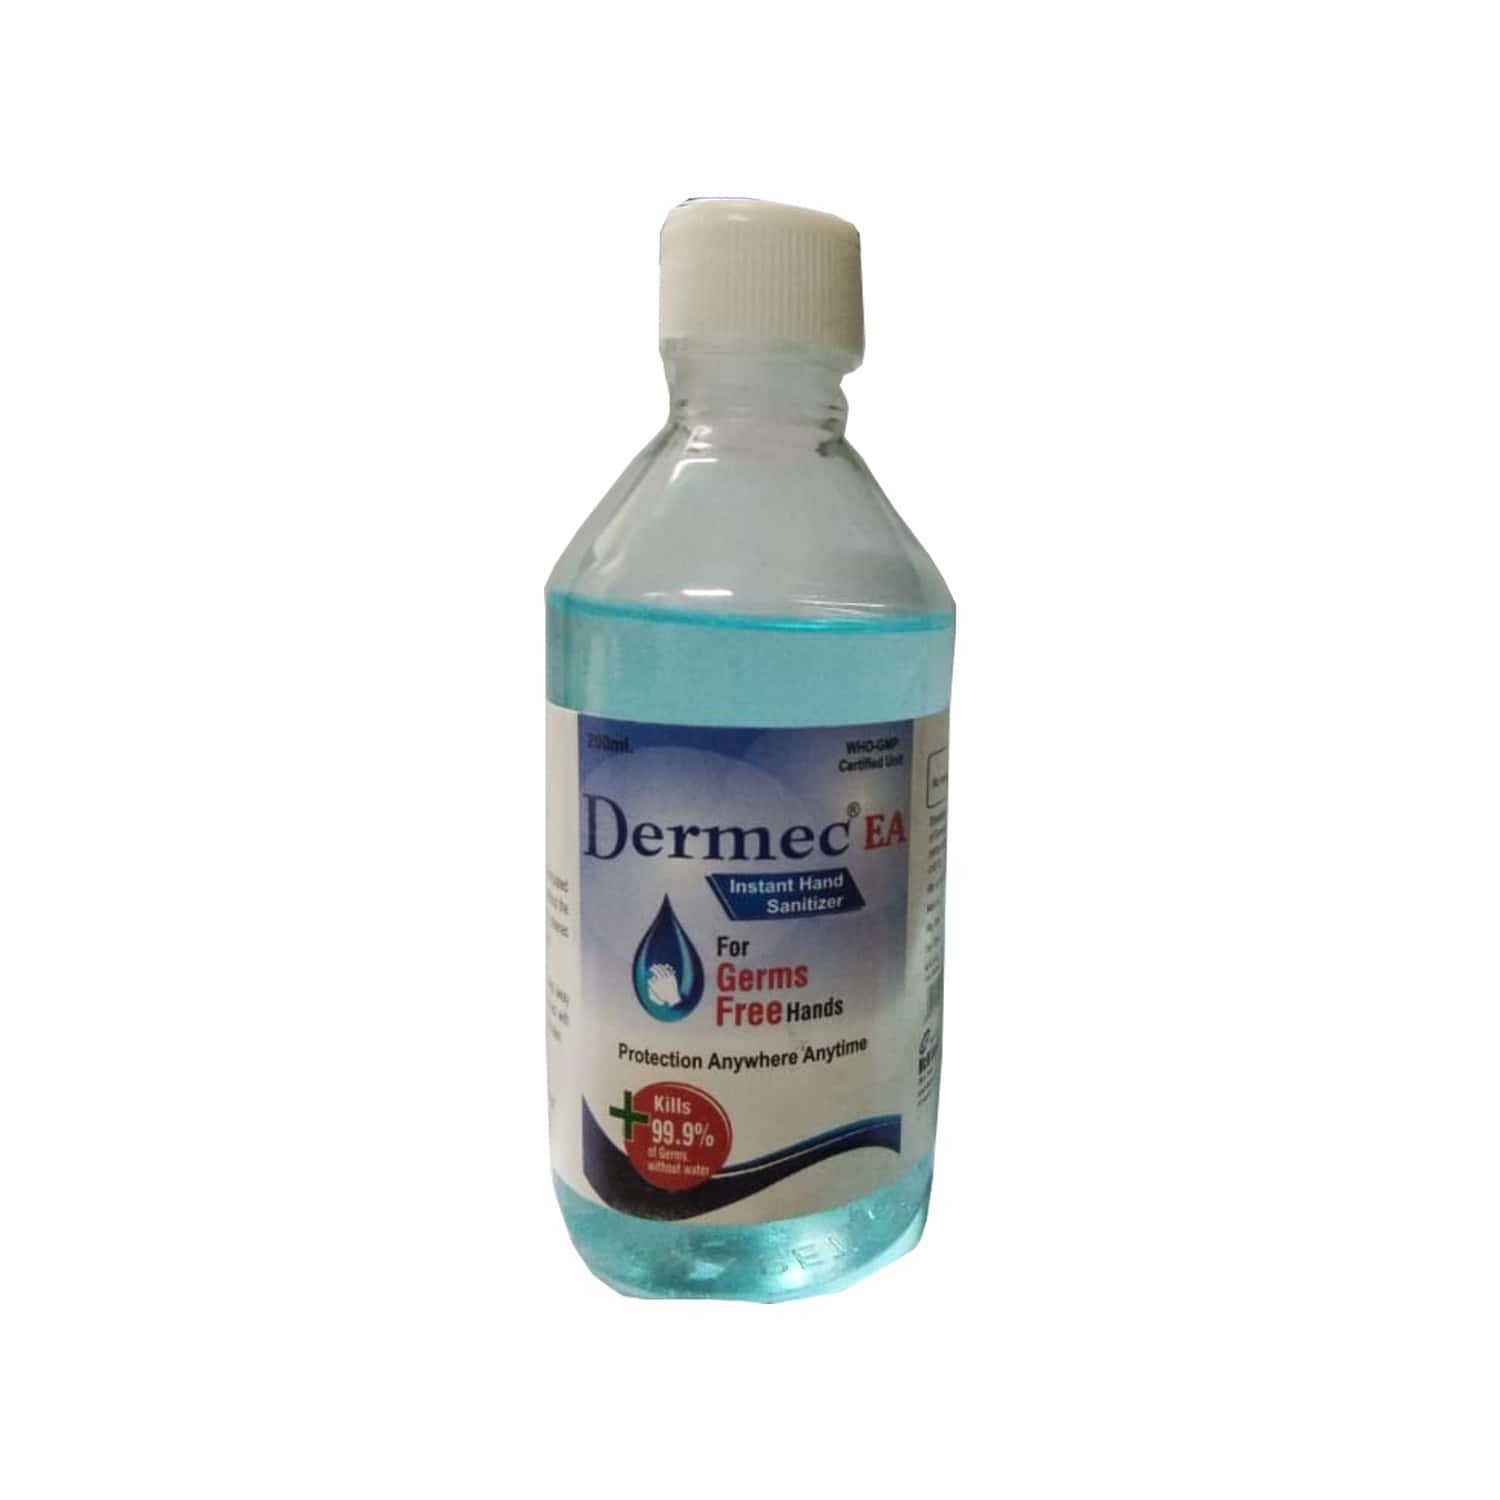 Dermec Ea Instant Hand Sanitizer Bottle Of 100 Ml